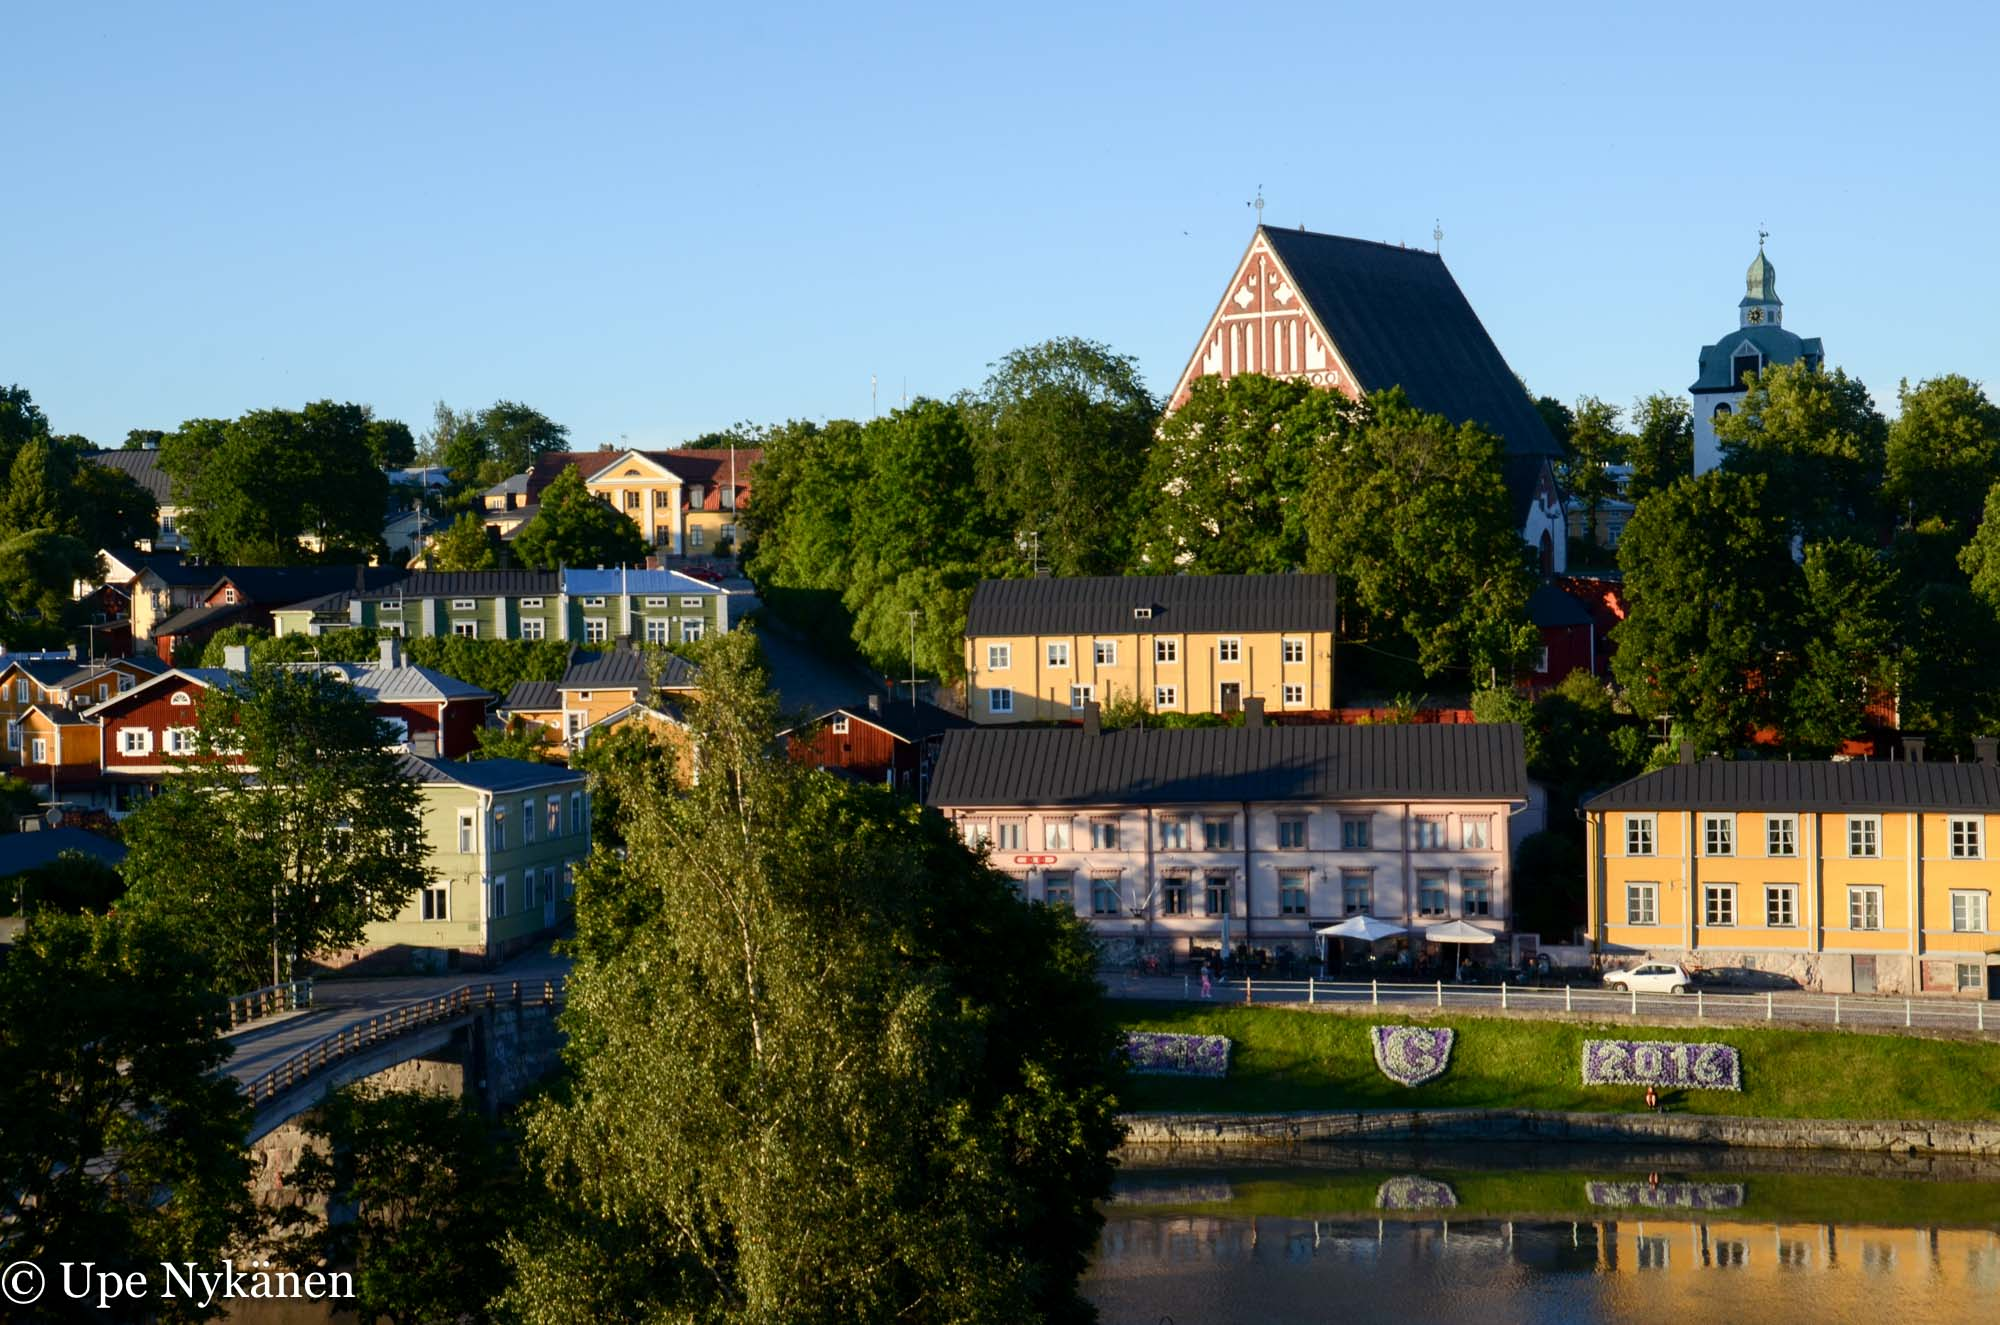 Vanha Porvoo Porvoo, An evening stroll in Porvoo's national urban park – FINLAND, NATURALLY